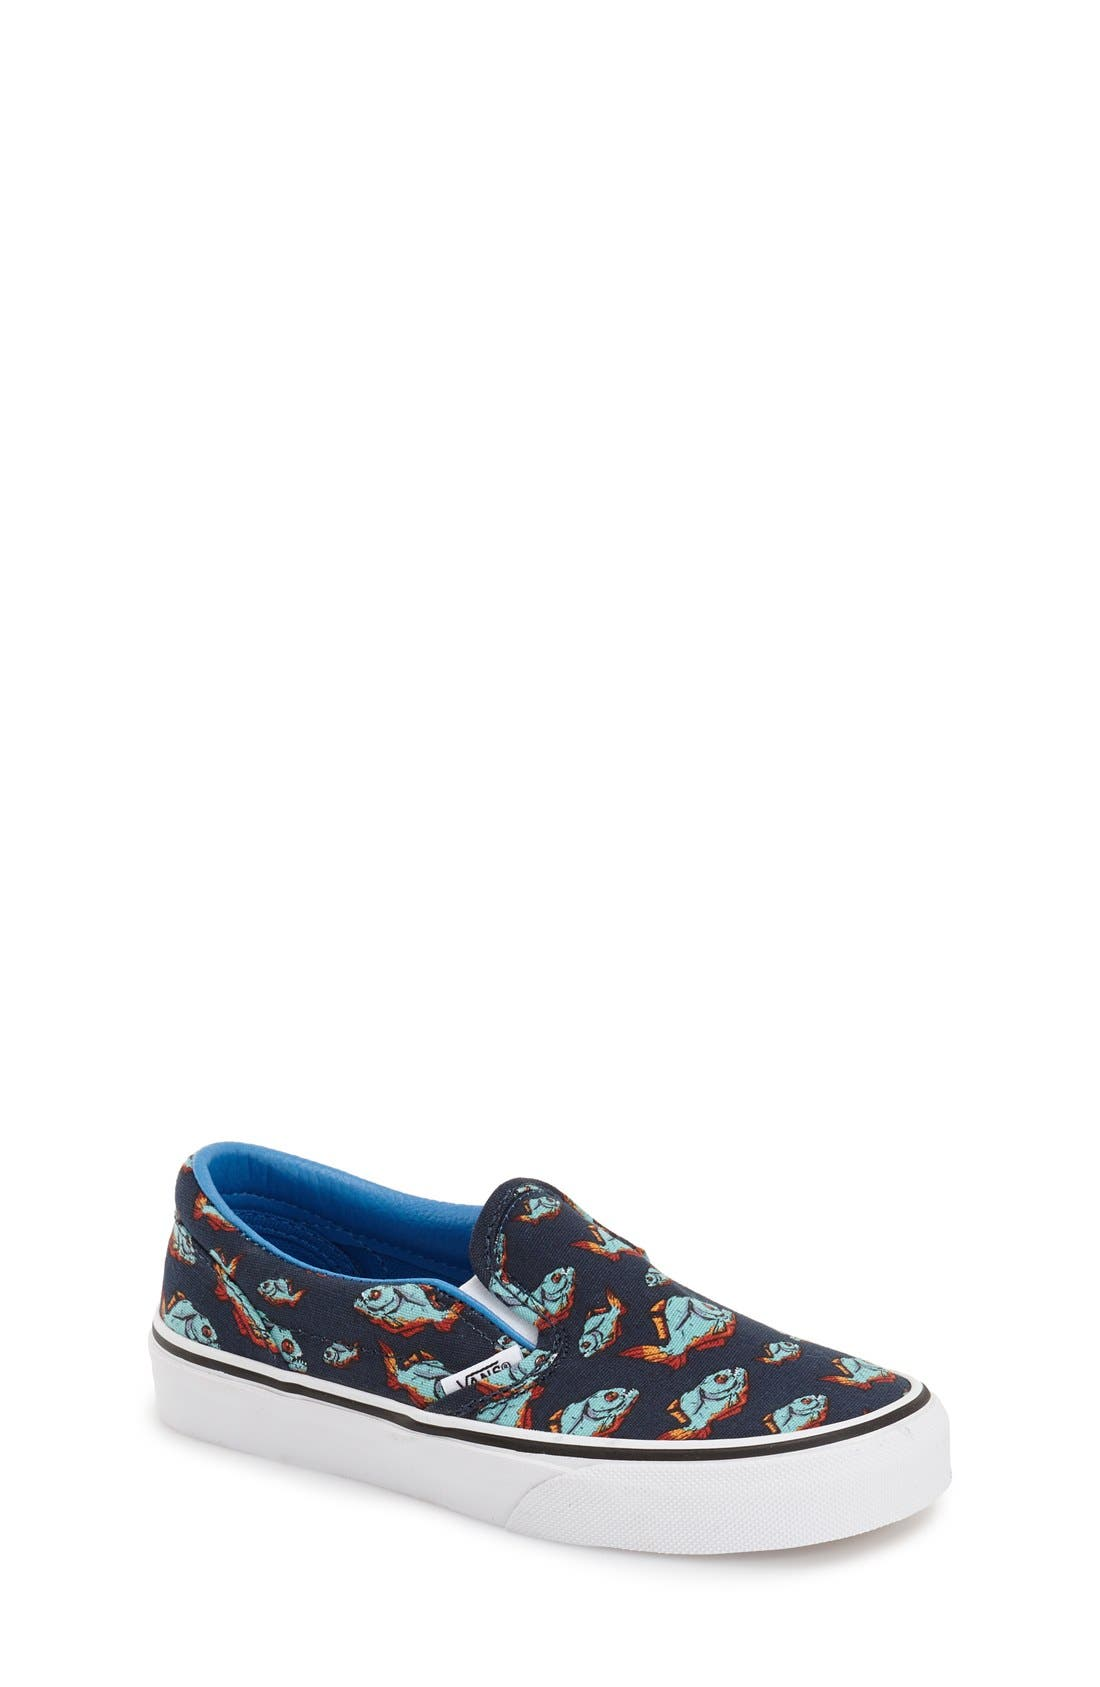 Free shipping with Nordstrom Women's Vans Shoes. Women's Vans Sneakers. Don't miss new products. Subscribe to the latest from Vans. Related searches Women's Platform Sneakers Women's Yellow Shoes. Follow us. Mobile. Learn about the new Lyst app for iPhone and iPad. get-raznoska.tk: $